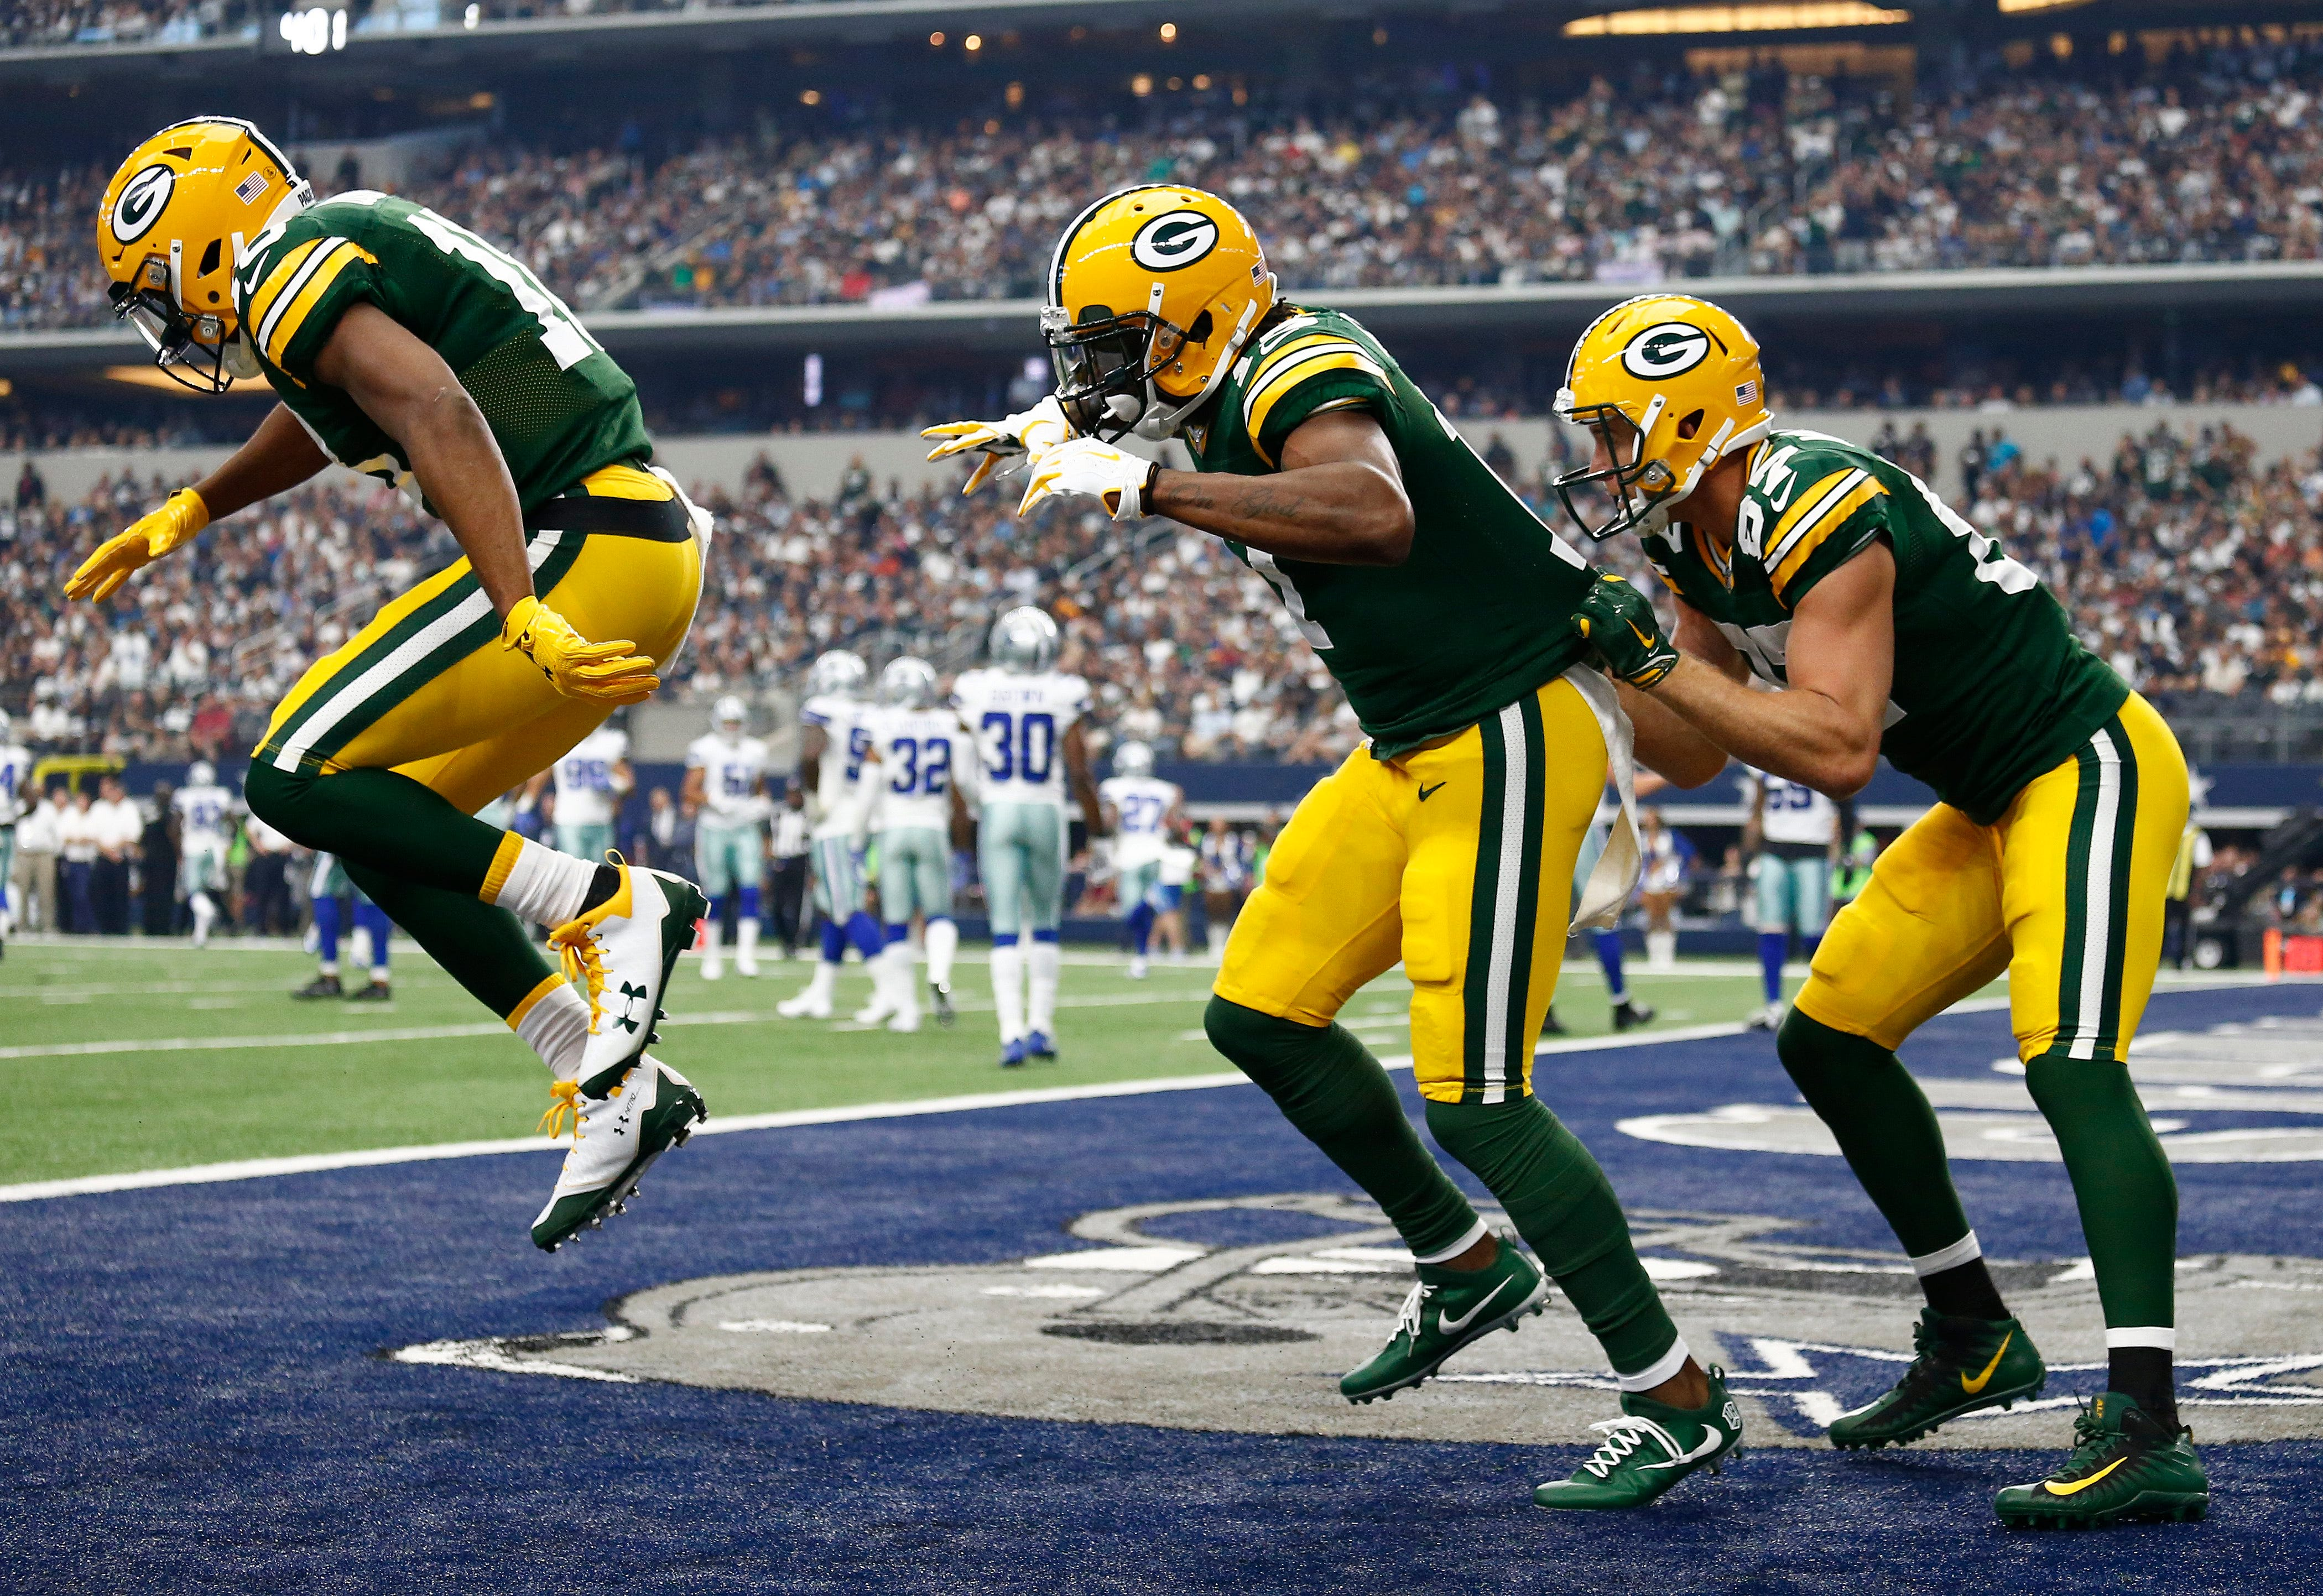 Packers did amazing bobsled team TD celebration